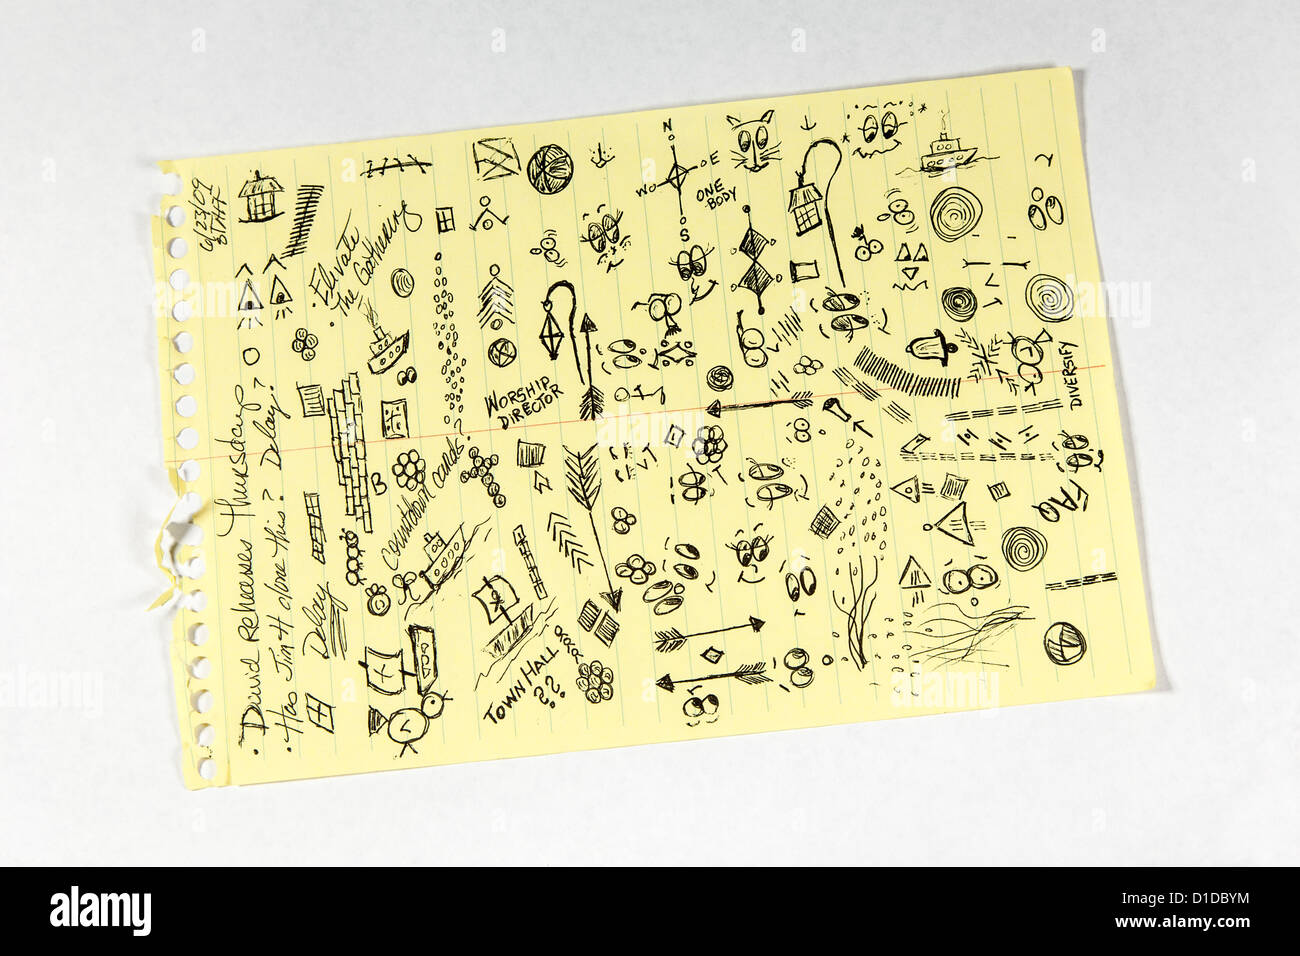 scribble pad stock photos scribble pad stock images alamy